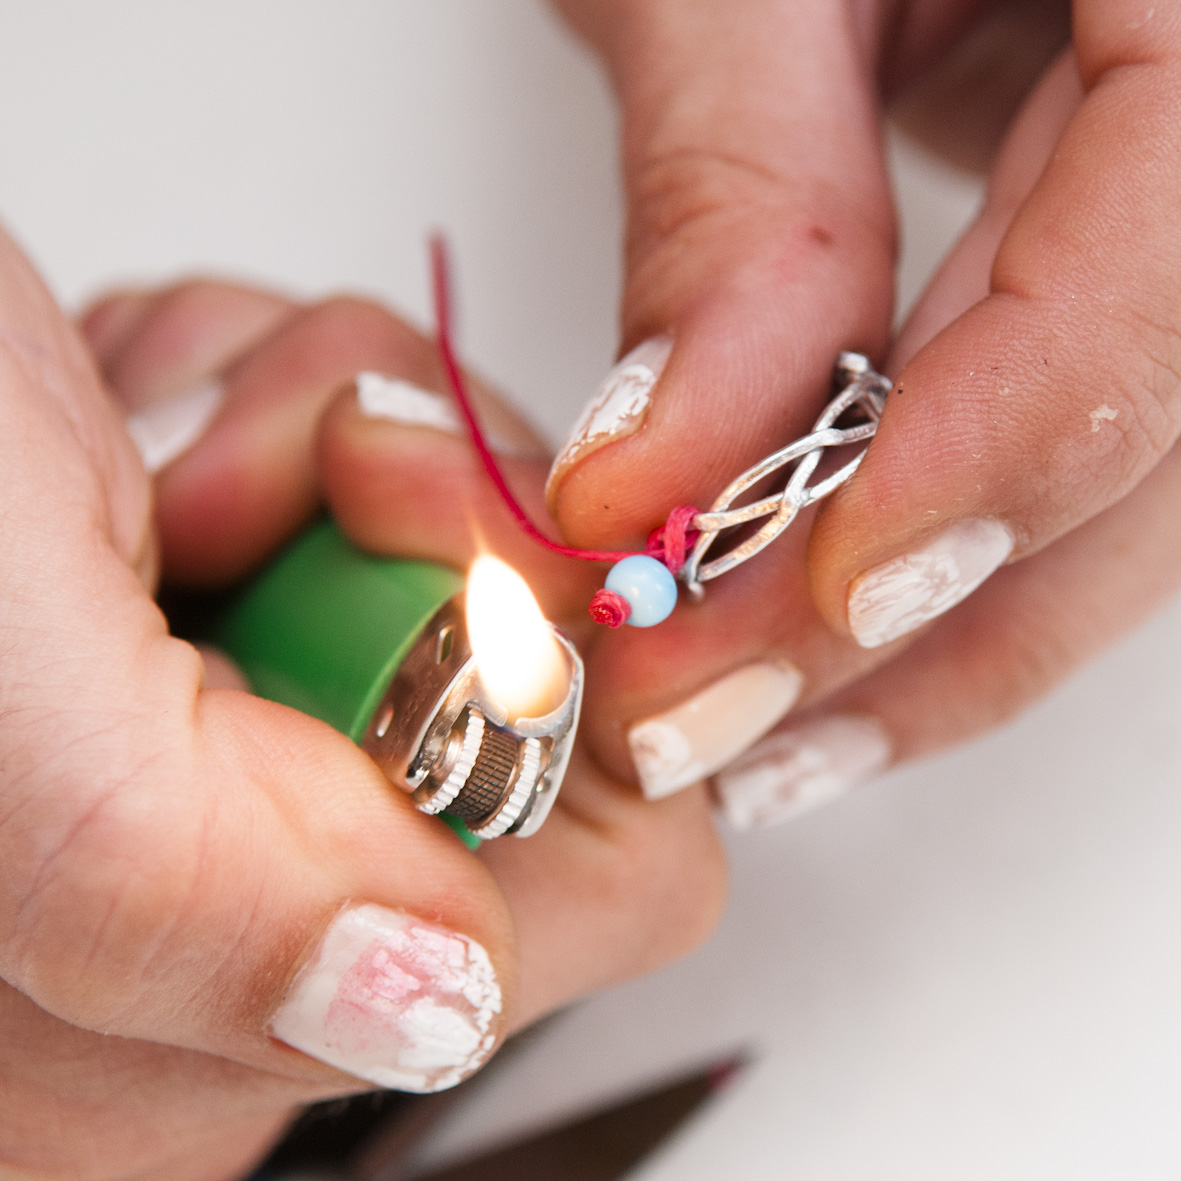 accessories_rings_wire_wake up cut_poppy anastouli_2212